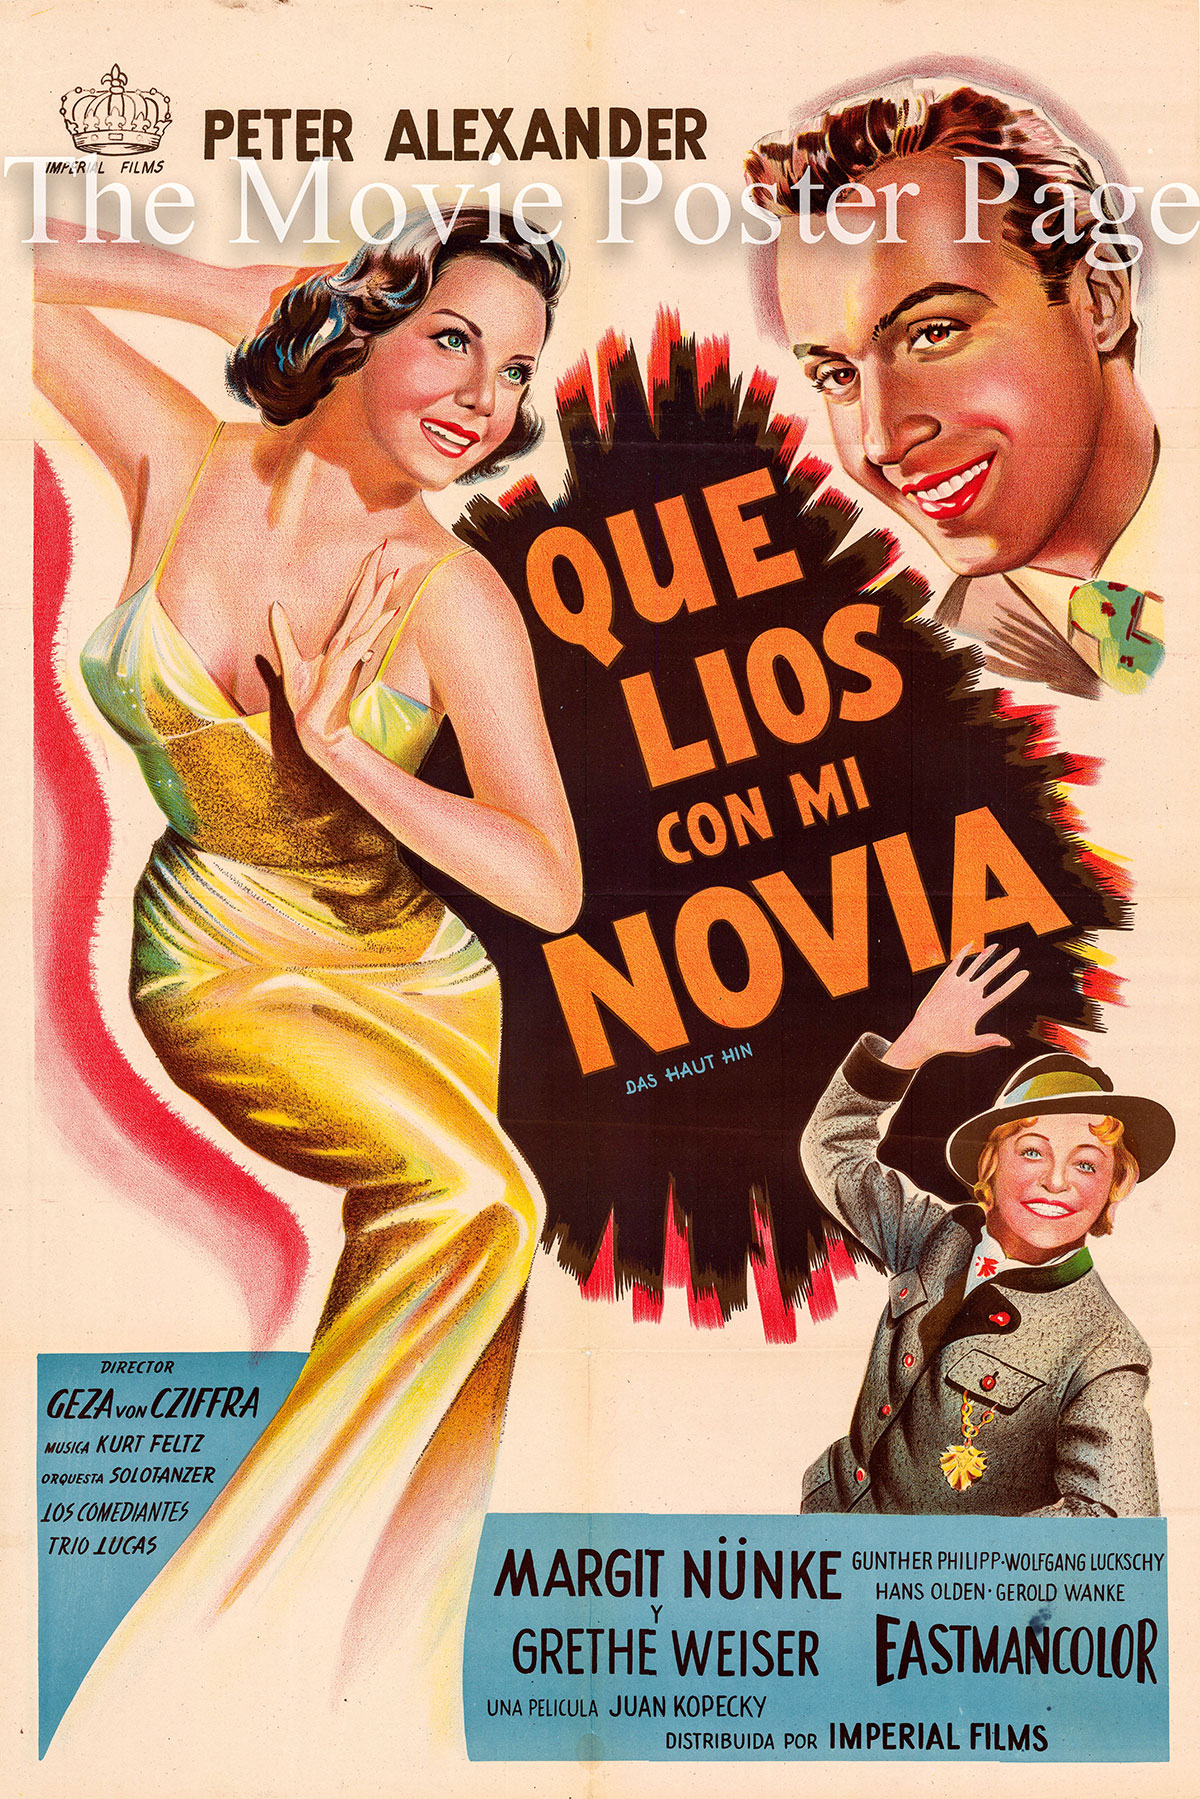 Pictured is an Argentine one-sheet poster for the 1957 Geza von Cziffra film Das Haut Hin starring Peter Alexander.